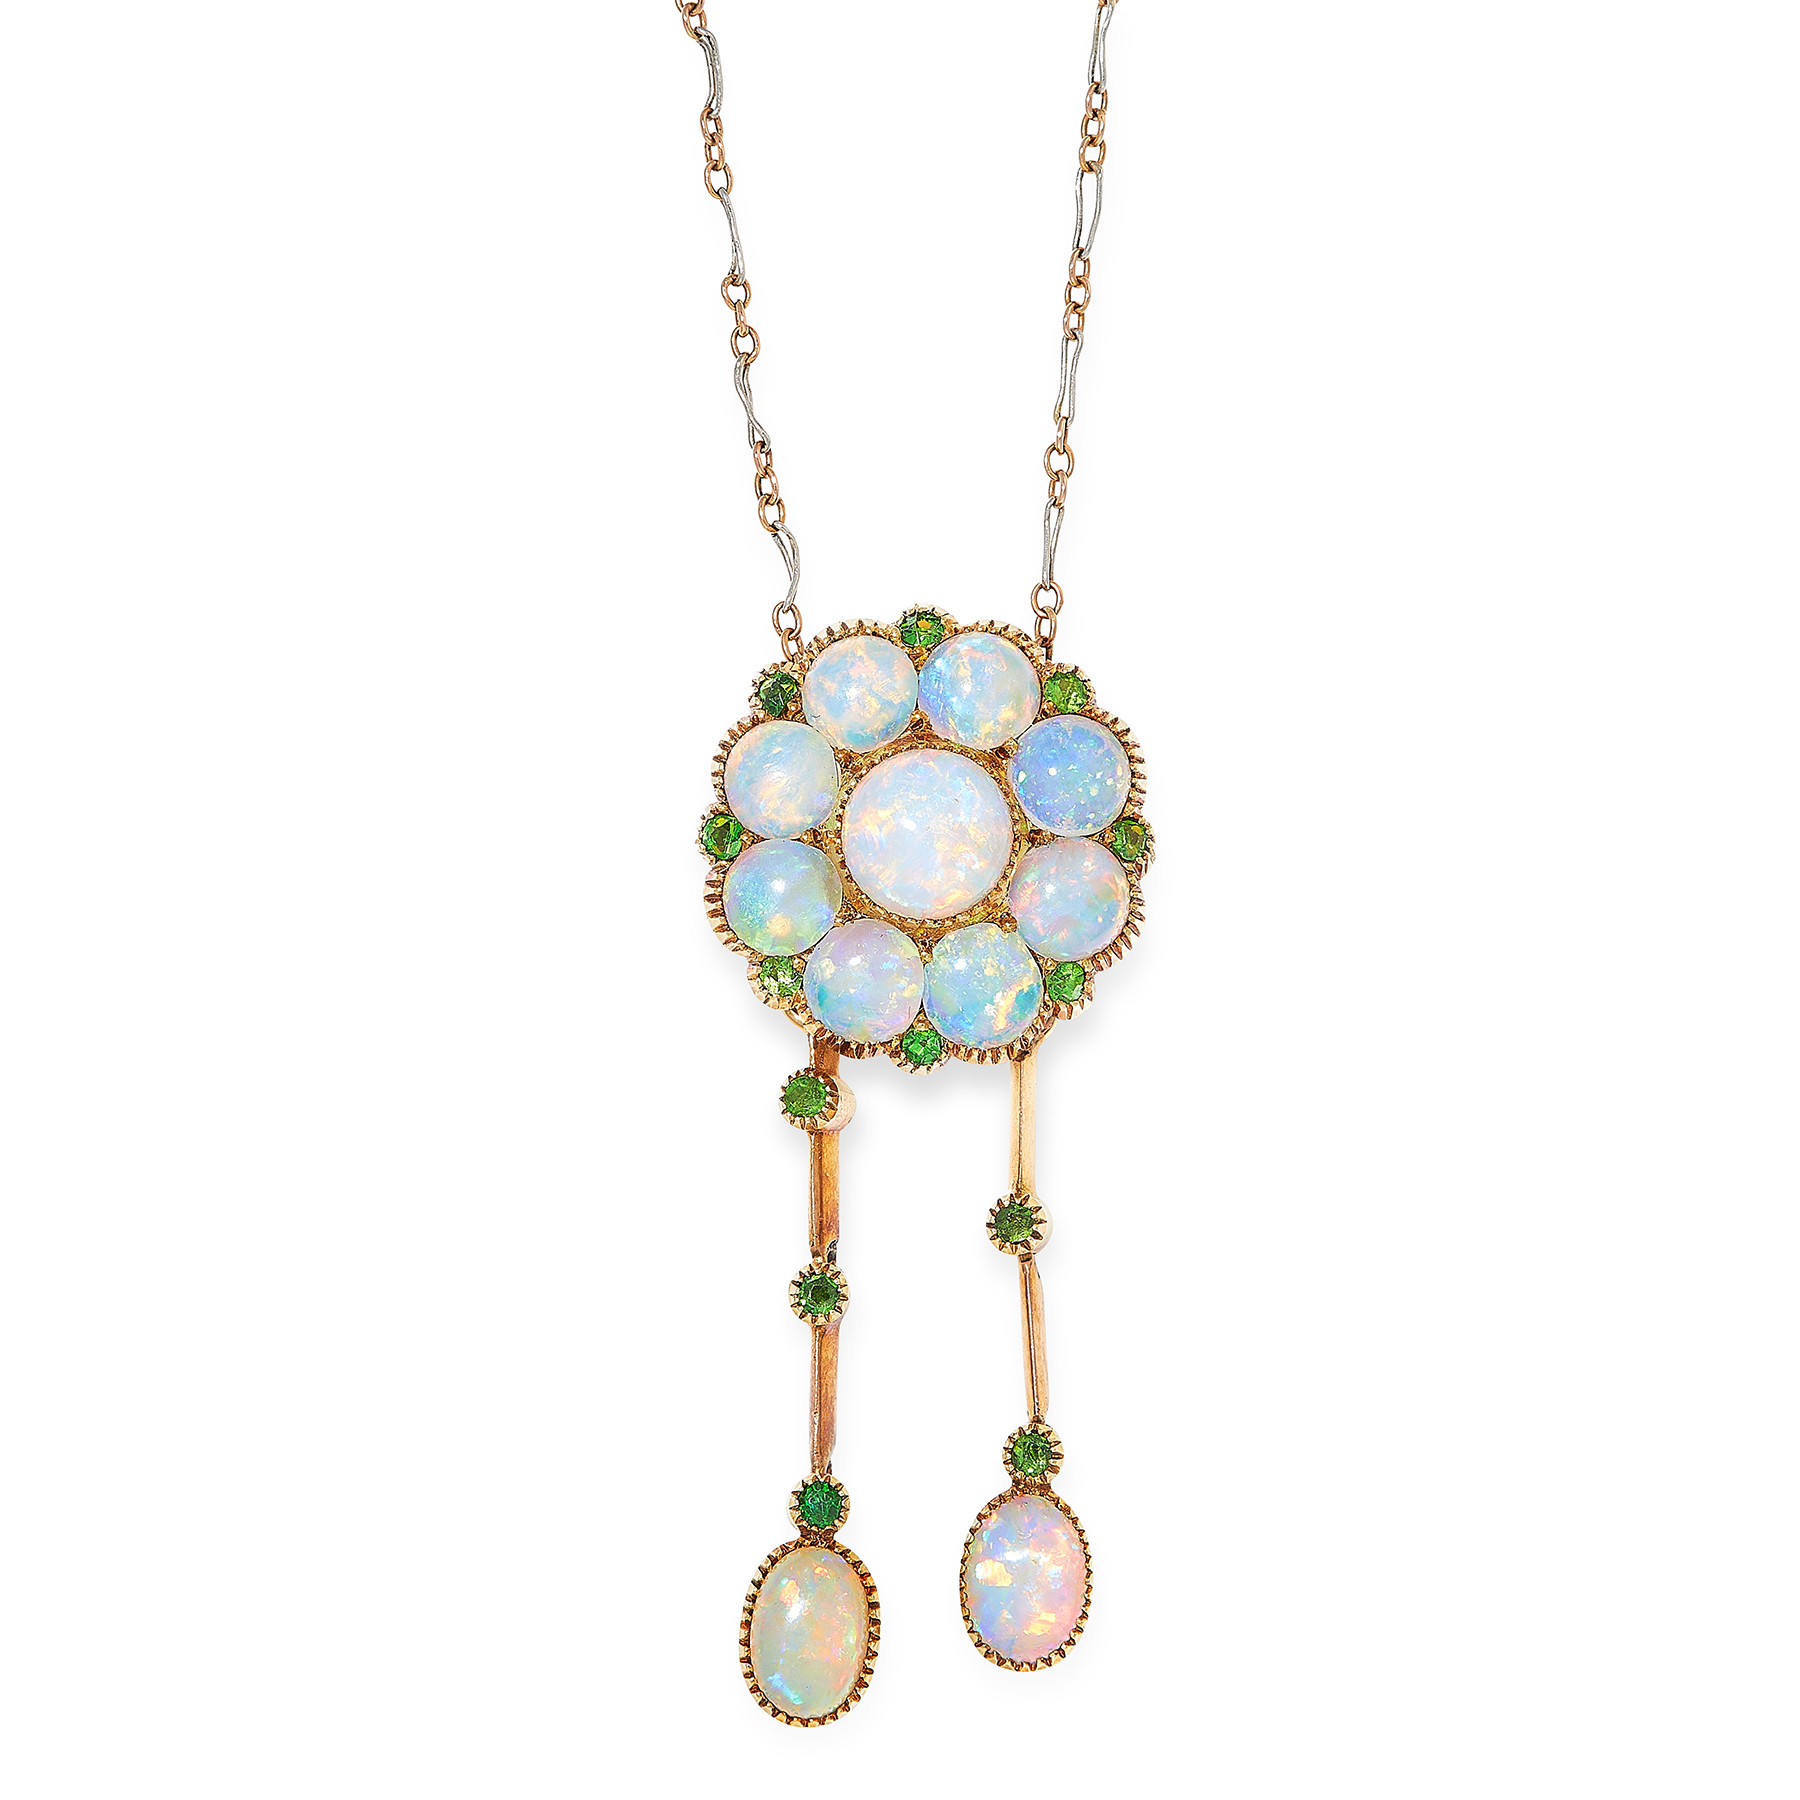 AN ANTIQUE OPAL AND DEMANTOID GARNET LAVALIER NECKLACE, EARLY 20TH CENTURY in 15ct yellow gold and